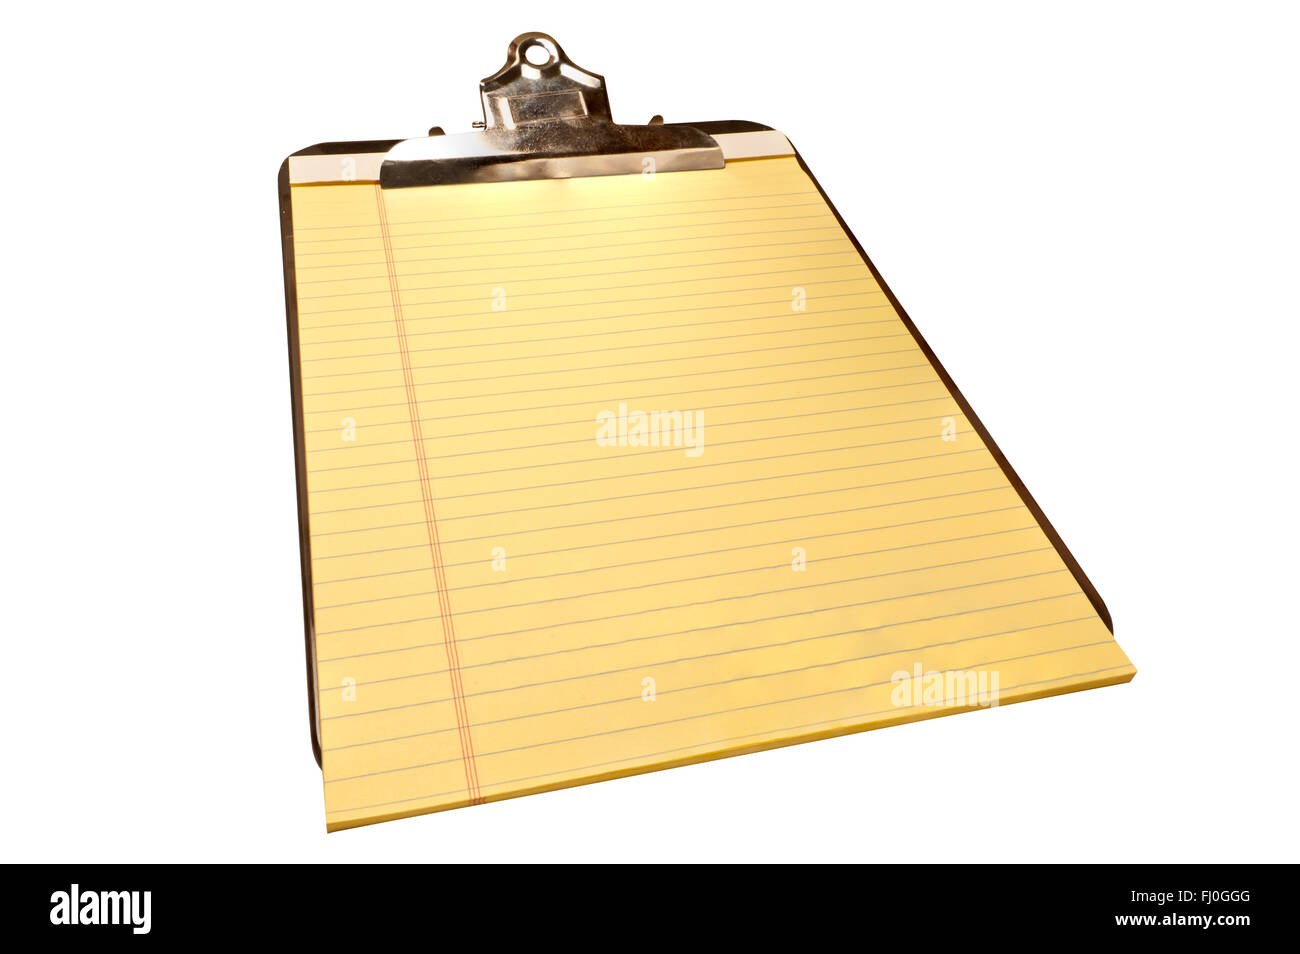 Blank Yellow Legal Pad on Old Metal Clipboard - Stock Image